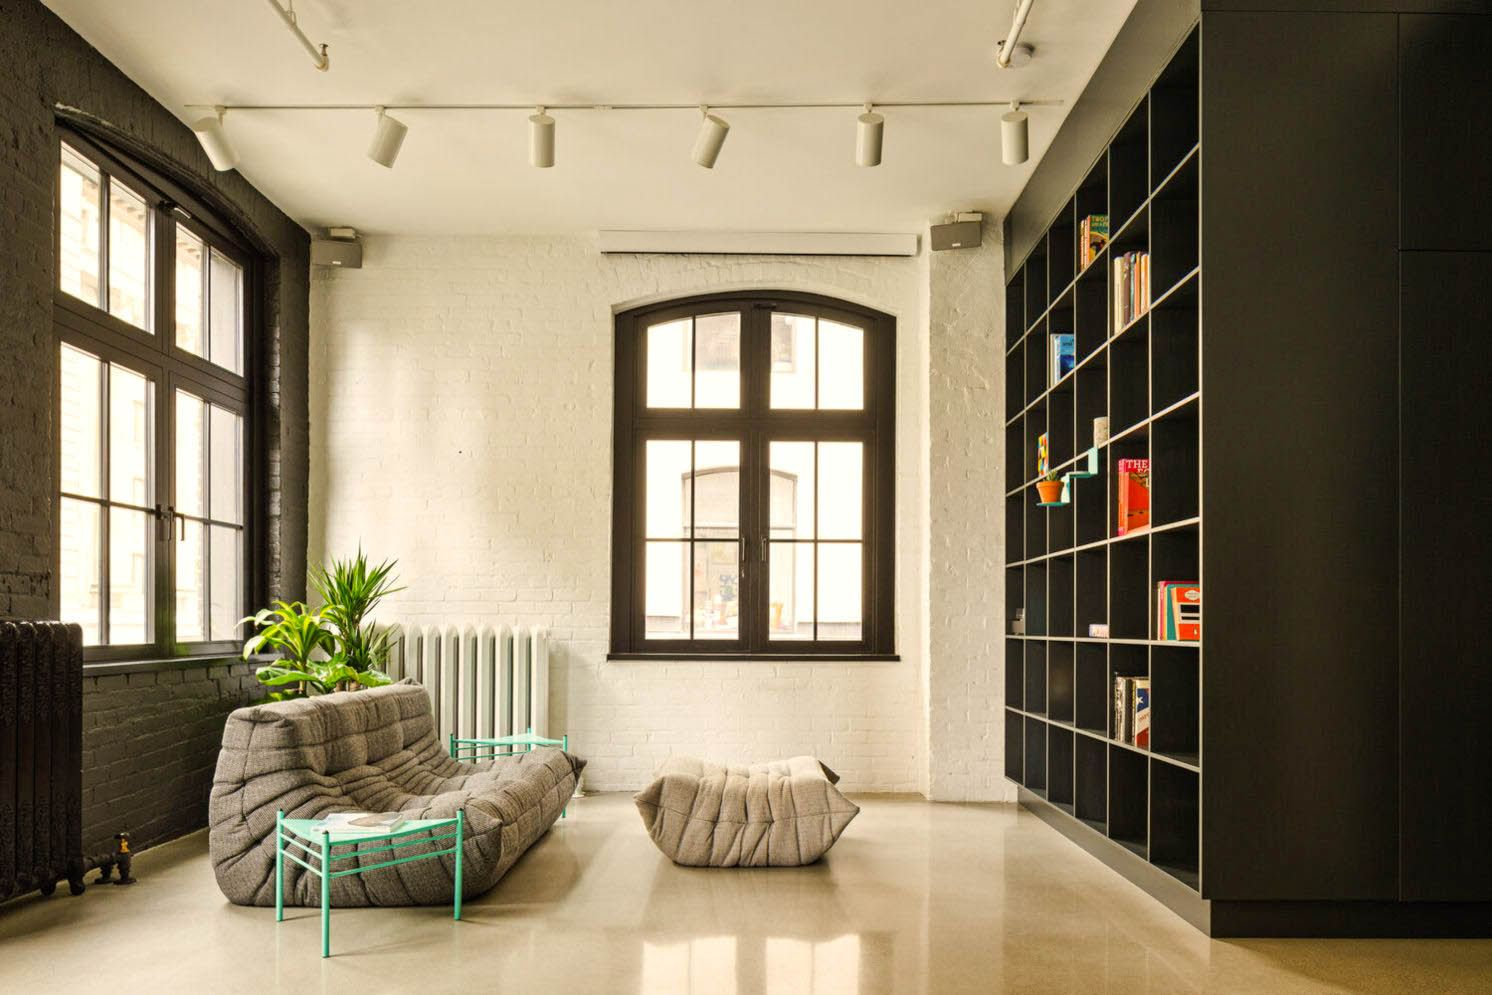 Black and ligh wood accent applied as partition and wall mouned shelf in MCGILL 120 renovation for a loft in Vieux Montreal (3)